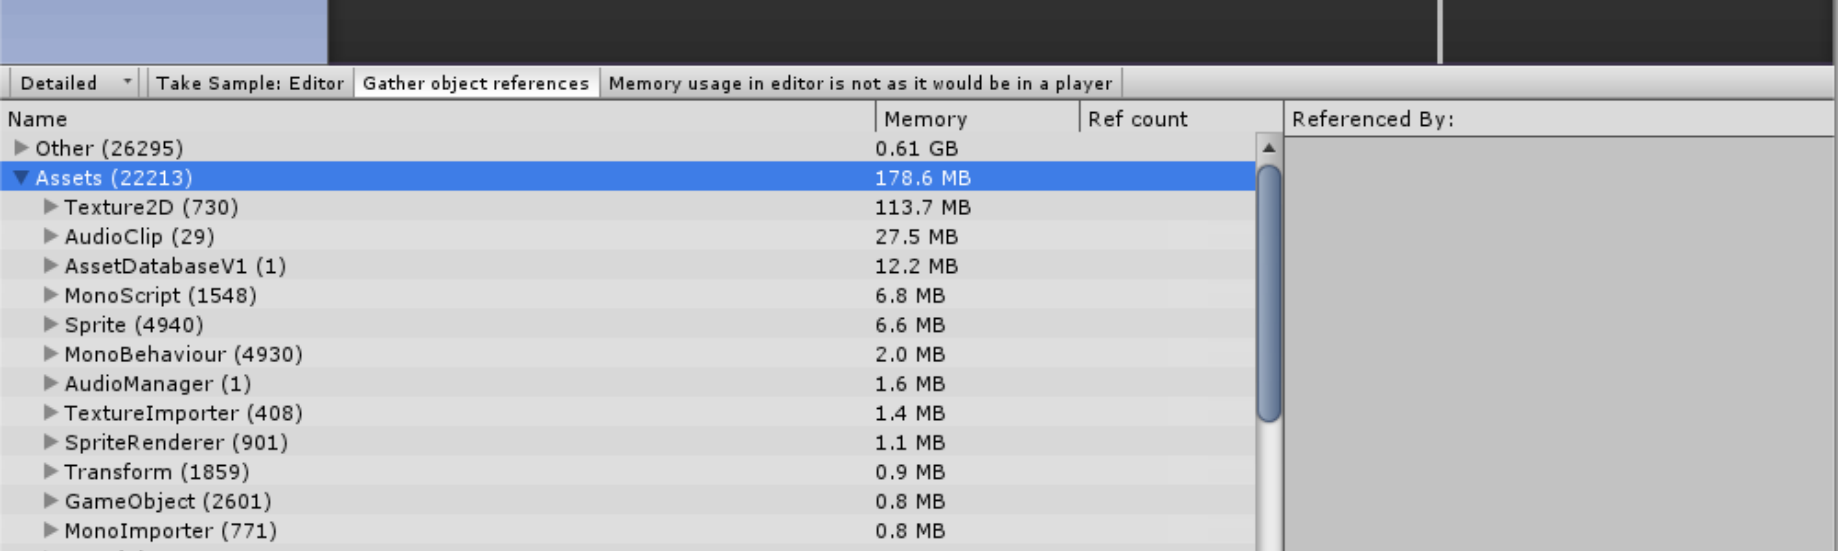 Unity Memory Management: How to manage memory and reduce the